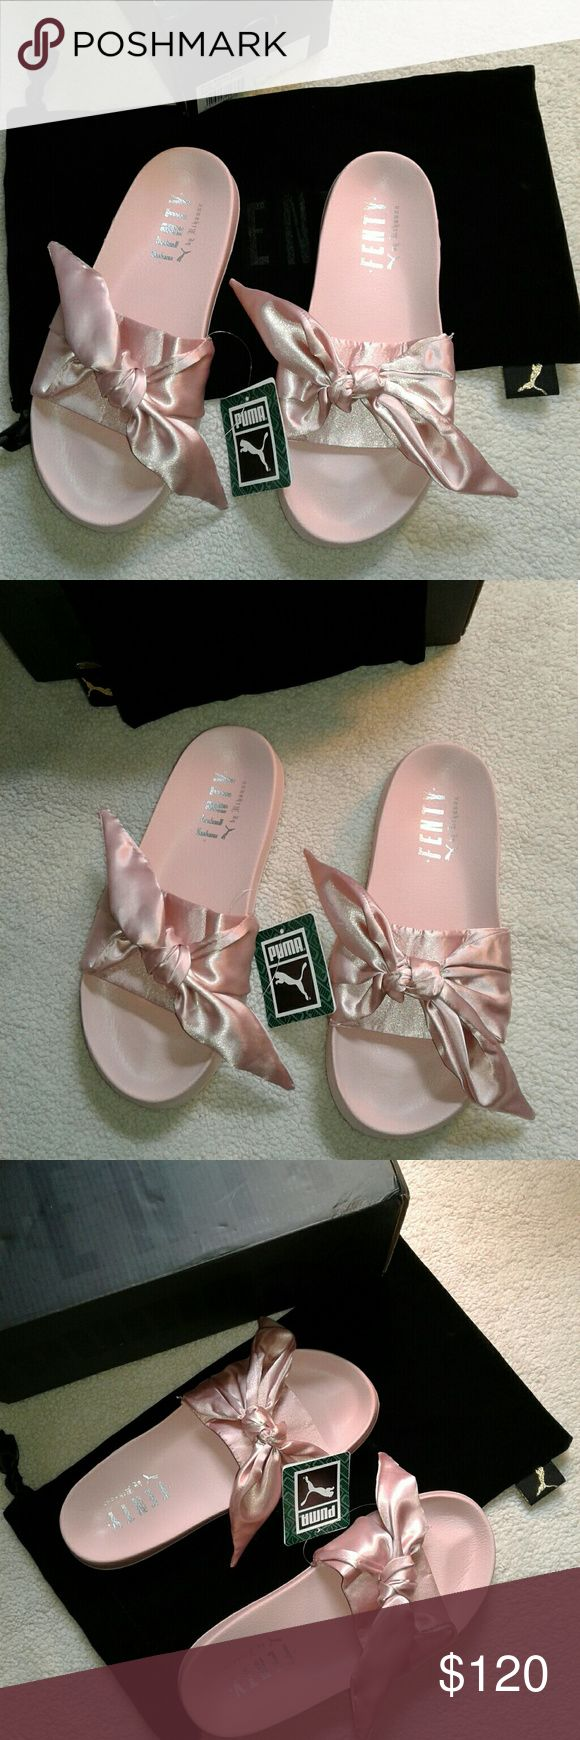 Rihanna Fenty Puma Bow Slides New  100% Authentic with original packaging With box and dust bag Size 8/8.5 fits size 8 best Rihanna Shoes Sandals